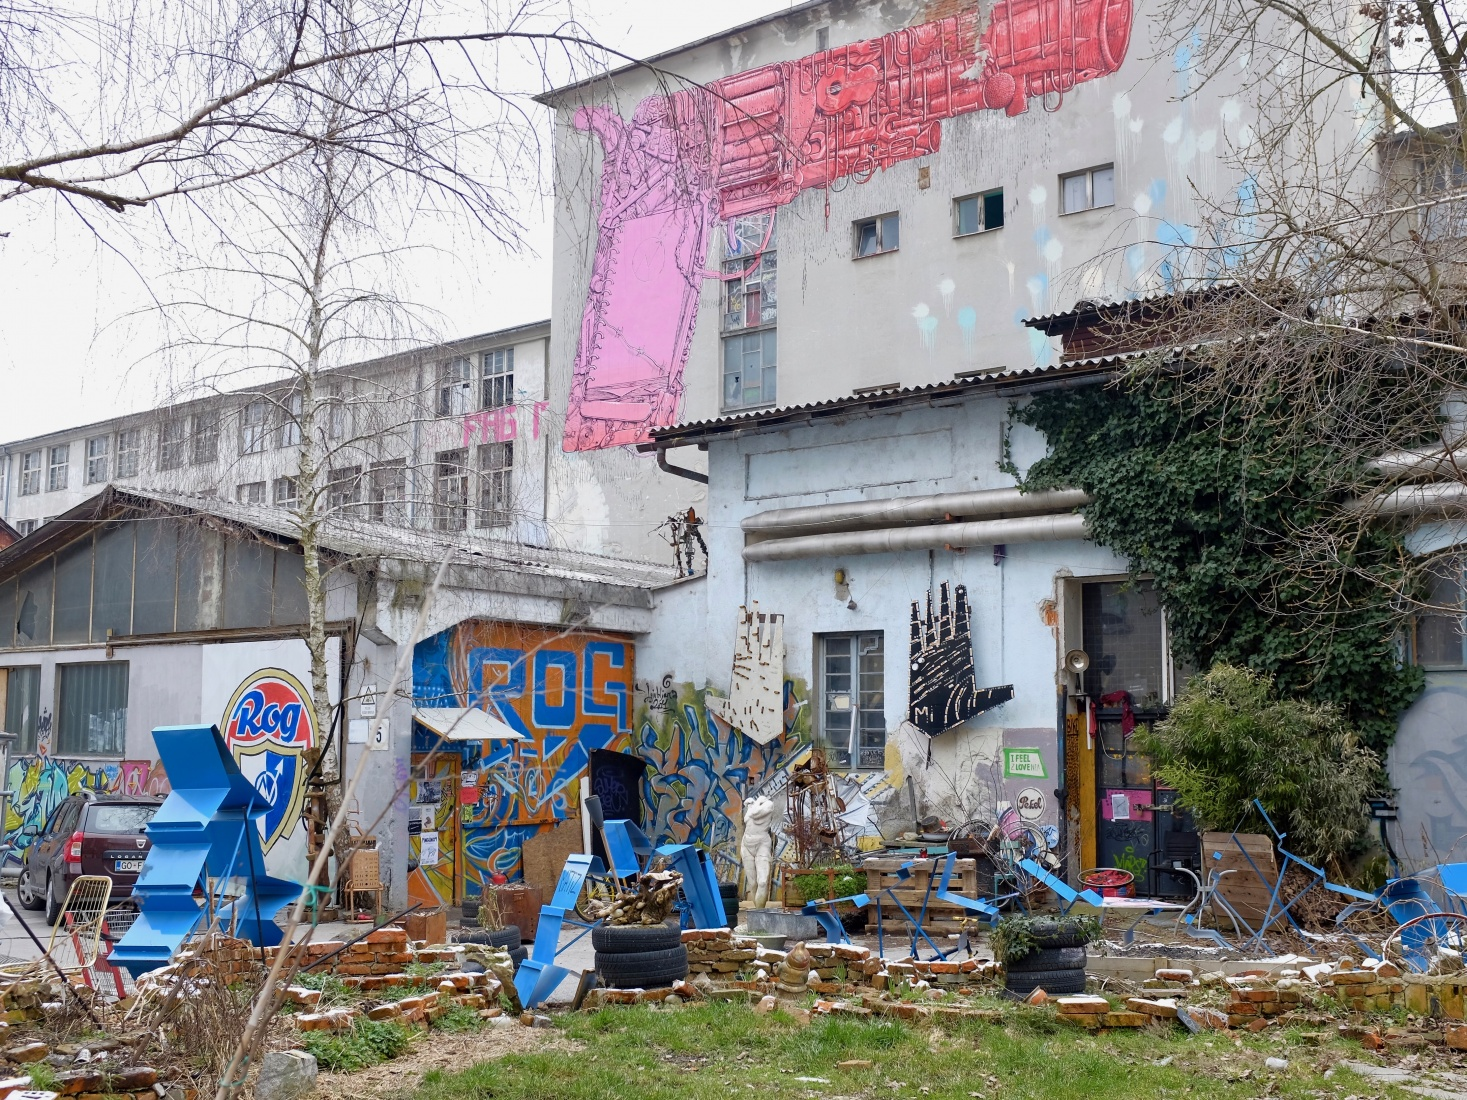 Graffiti, statues, and assorted street art at the Rog squat, popular with the student and youth populations in Ljubljana, Slovenia.